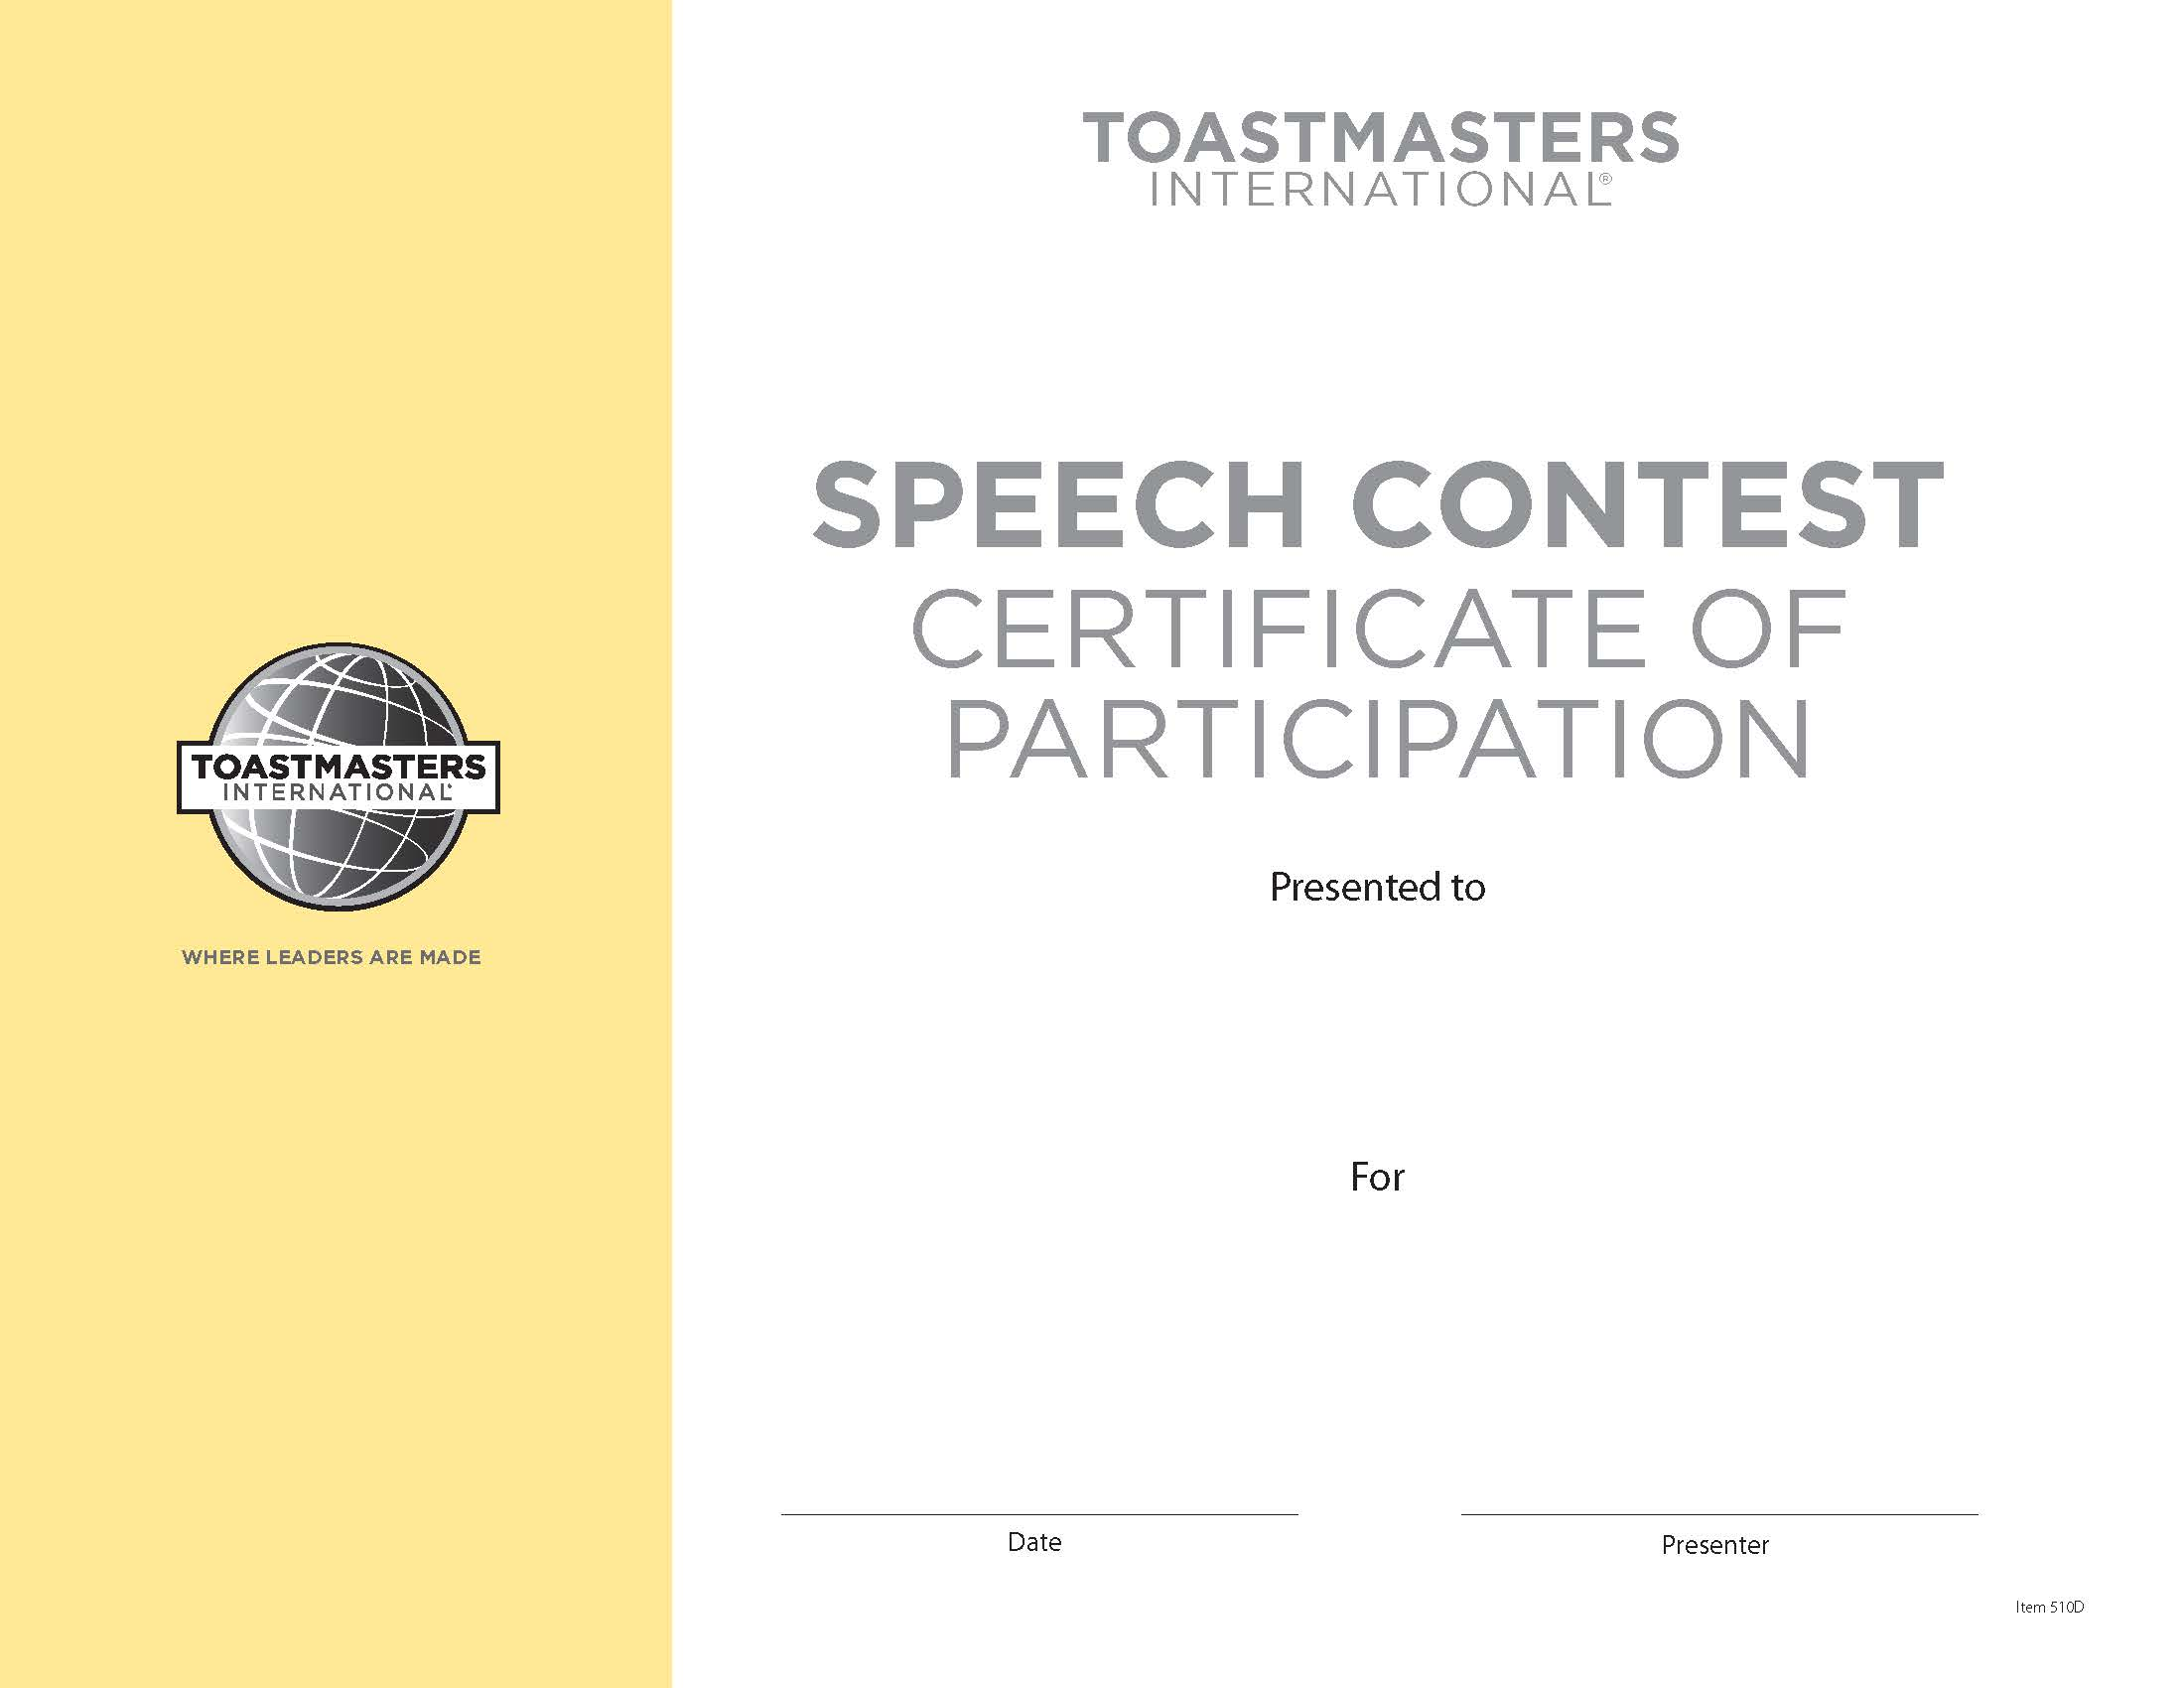 toastmasters certificate of appreciation template - speech contest participation certificate